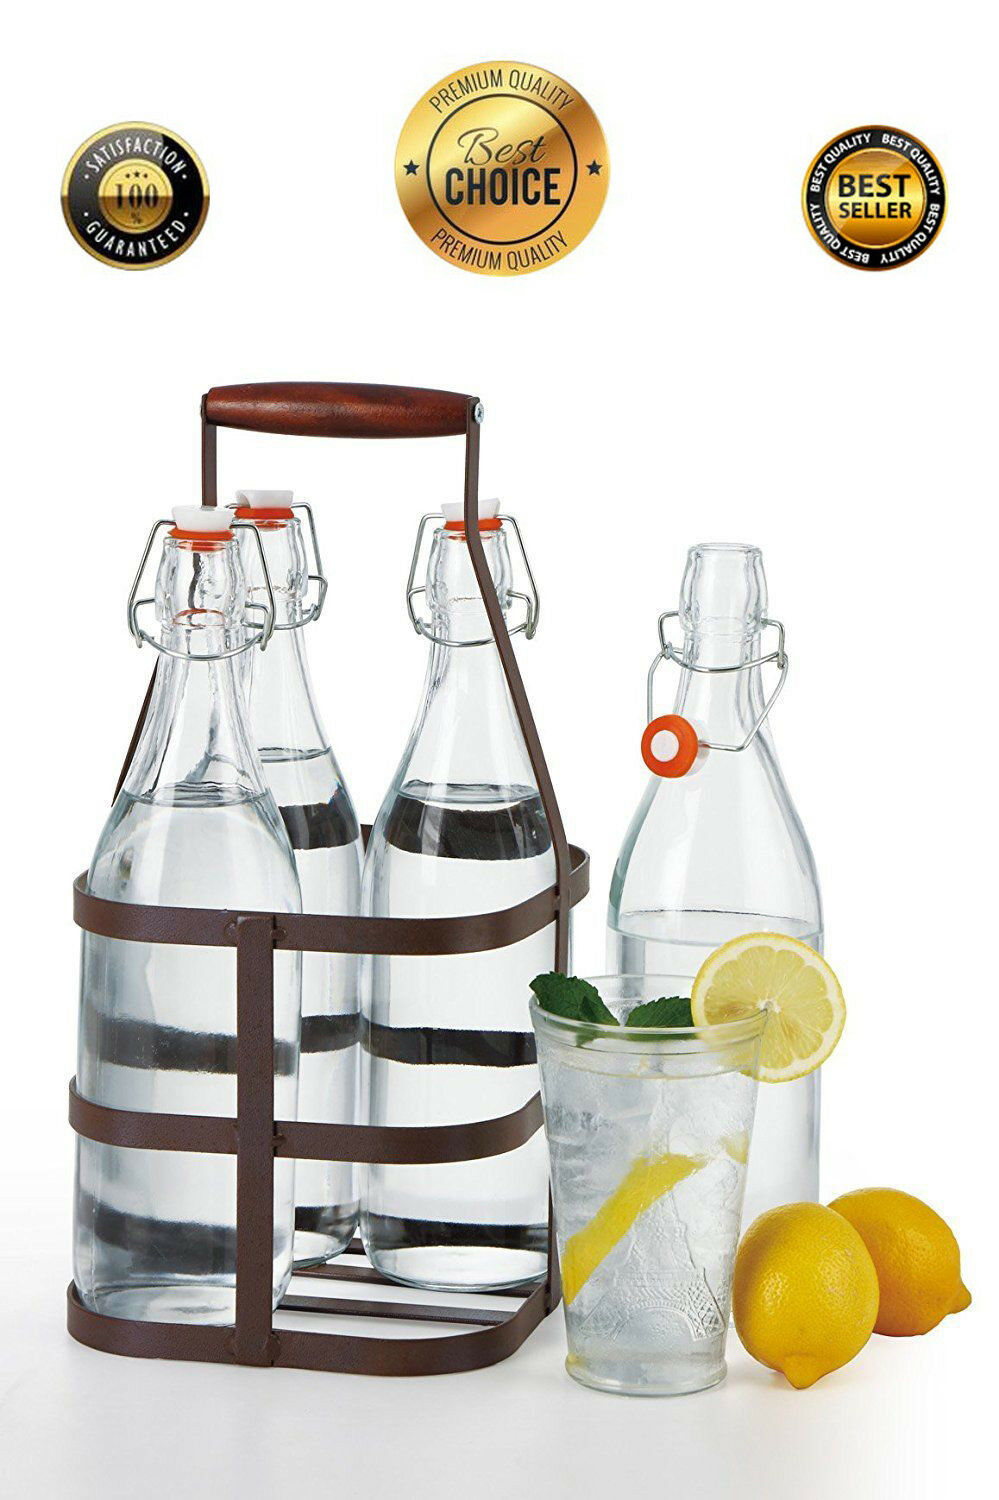 32 oz EZ Cap Vintage Clear Home Brewing Beer Oil Glass Bottles, Case of 4 +CADDY